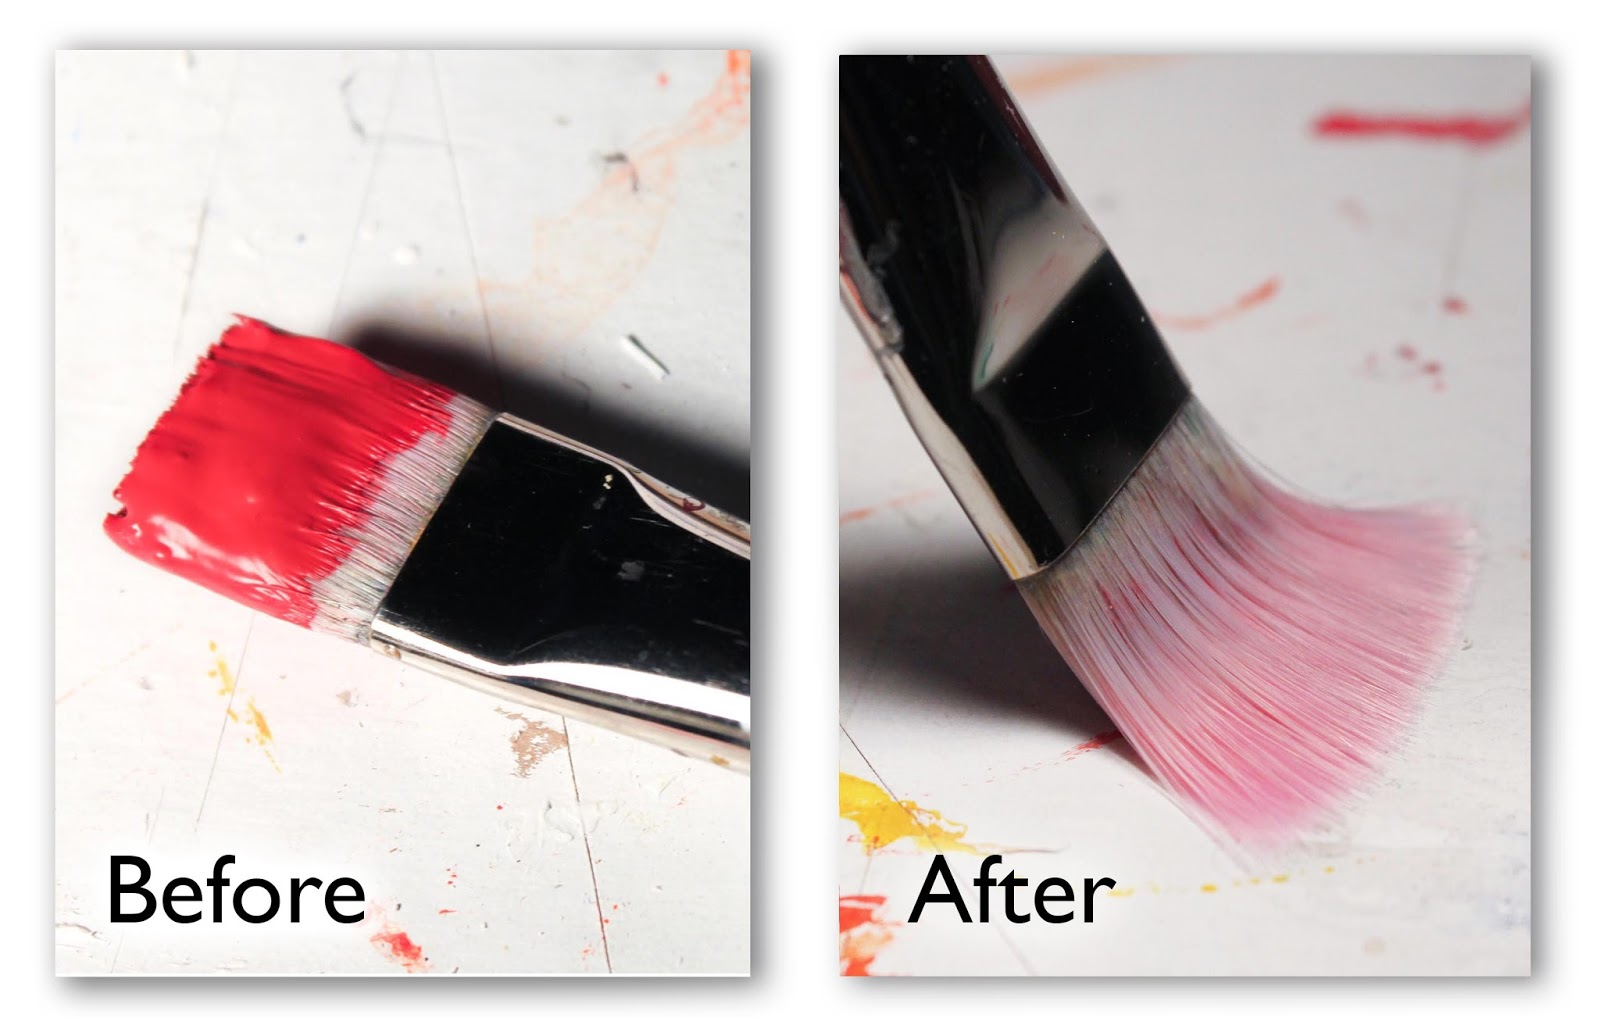 the results of cleaning dried acrylic paint from a paintbrush